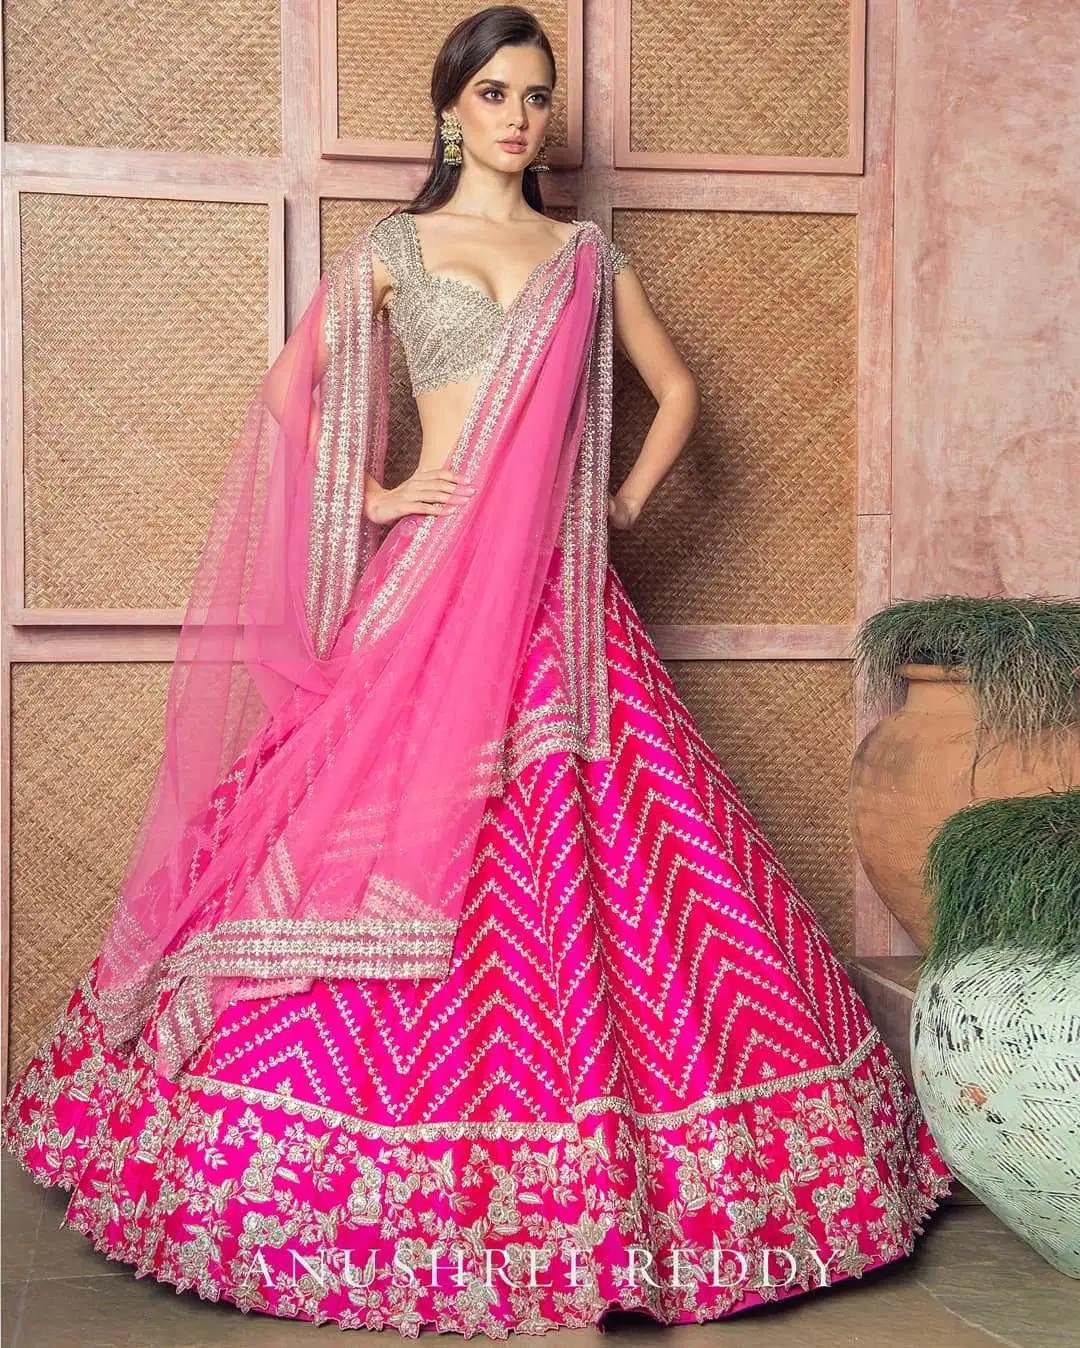 The Best Indian Bridal And Party Lehenga Designs That Will Steal Your Heart By Umesh Kumar Medium,Small Space Design Ideas For Small Kitchens